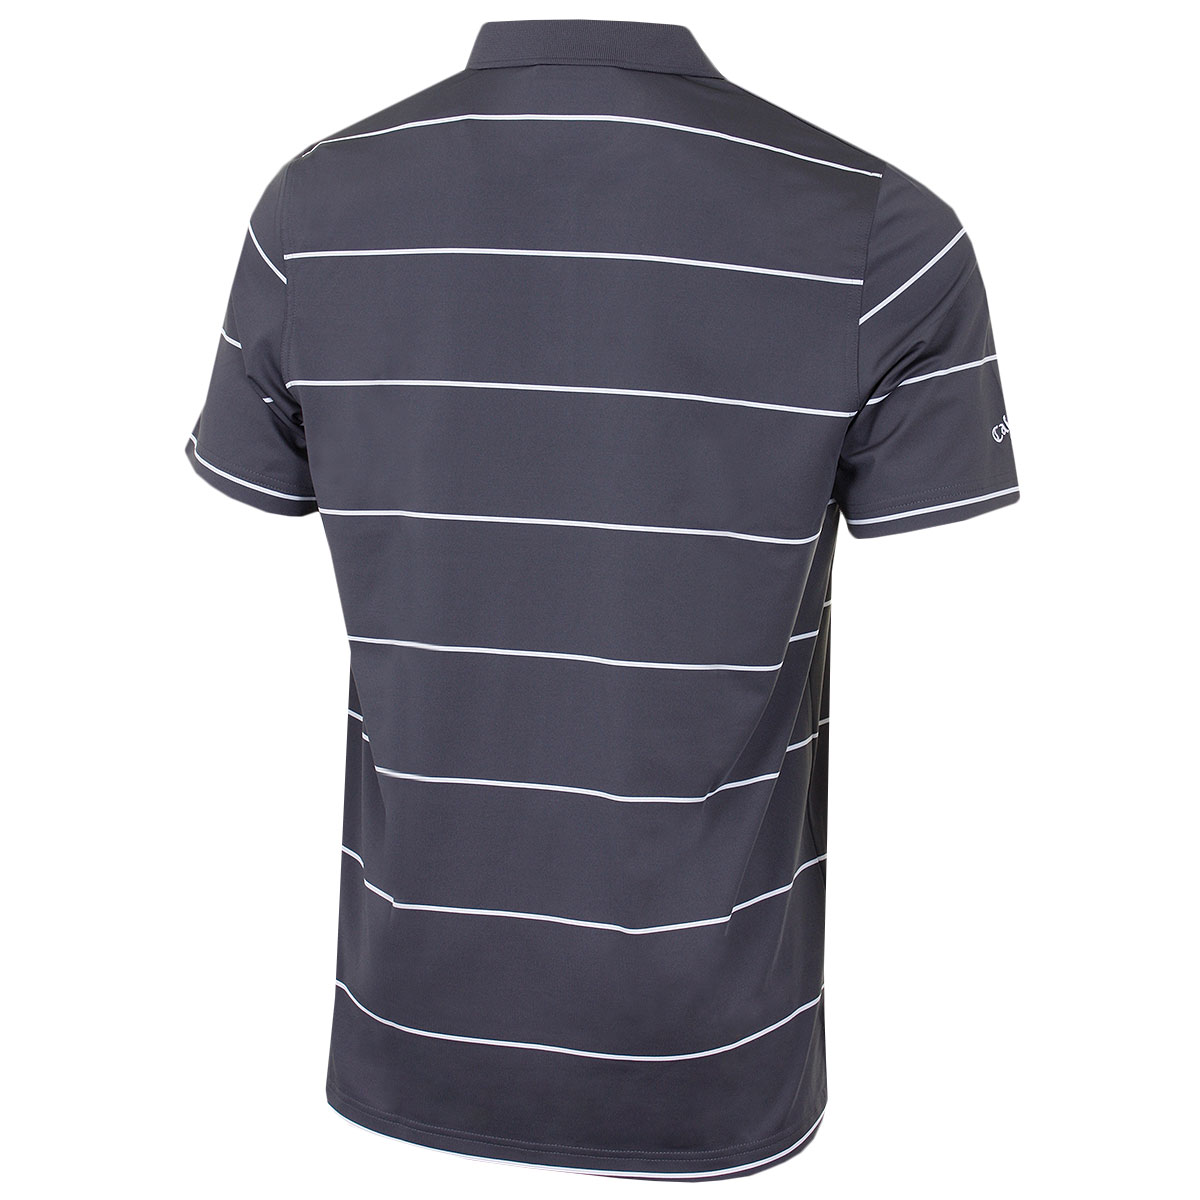 Callaway-Golf-Mens-Chev-Auto-Stripe-Polo-Shirt-Opti-Dri-Short-Sleeve-53-OFF-RRP thumbnail 3